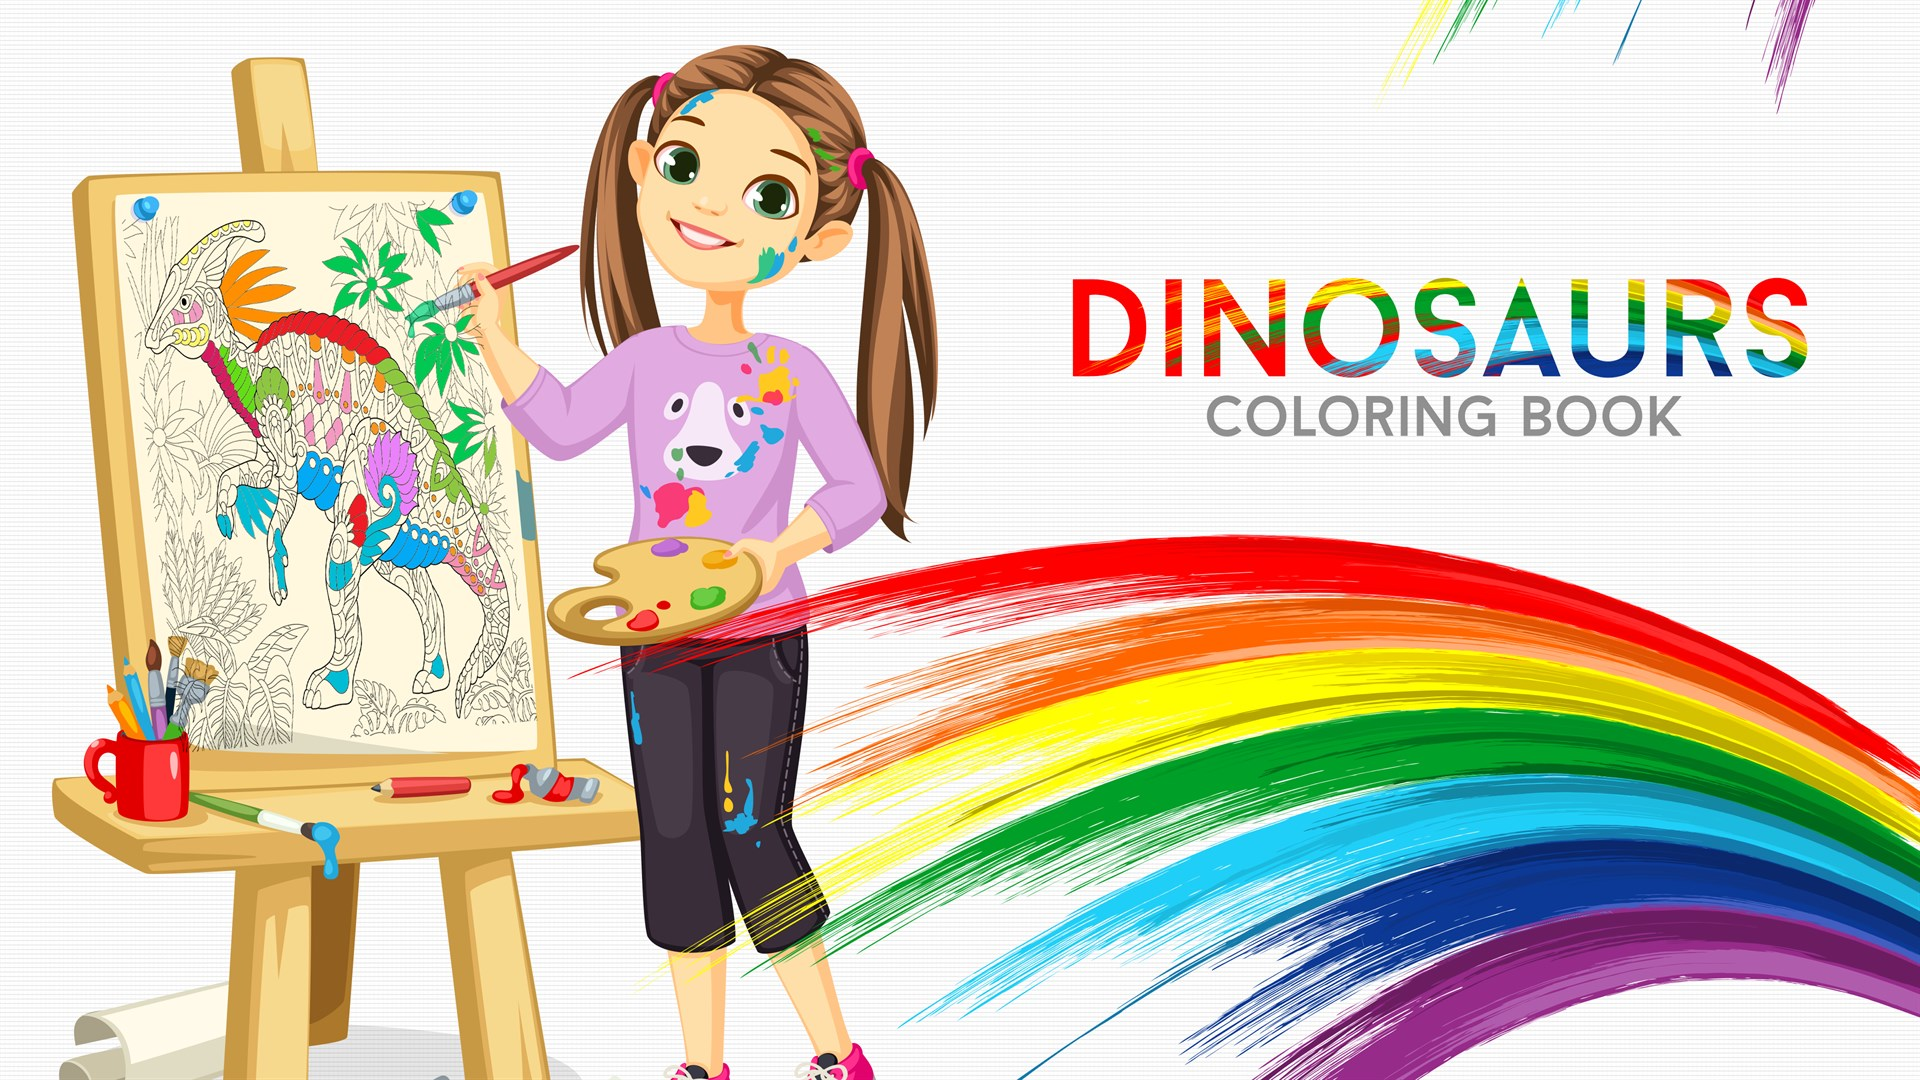 Get Dinosaurs Coloring Book For Adults And Kids